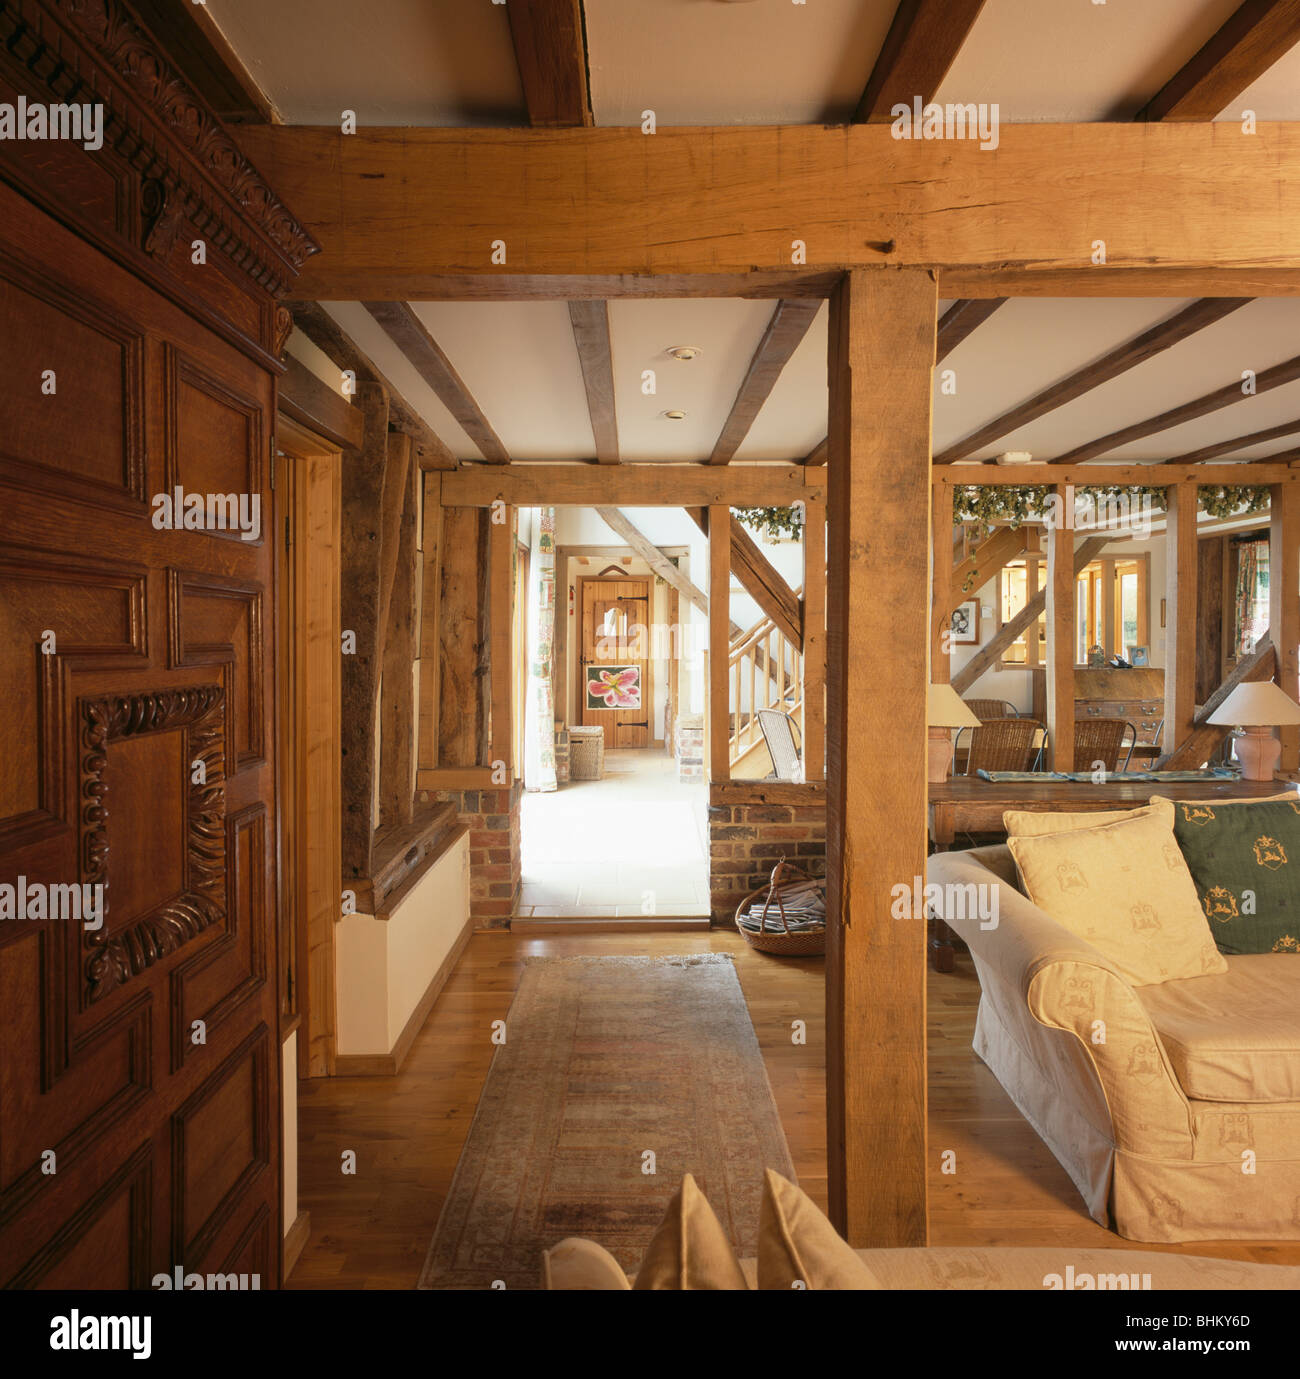 Large wooden support and ceiling beams in living room